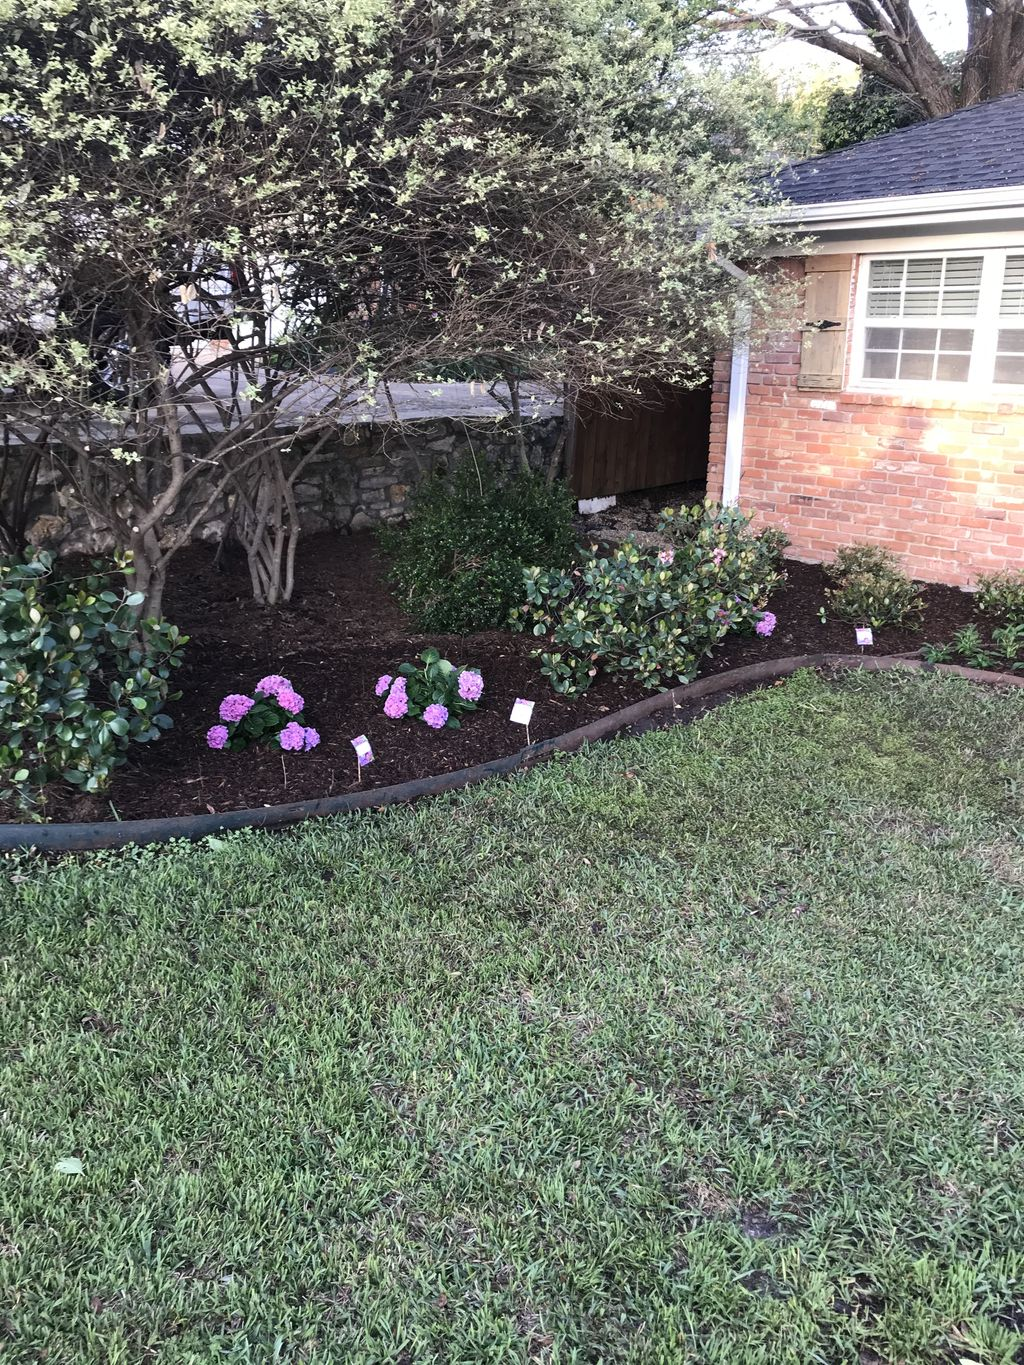 Landscape rehab and makeover